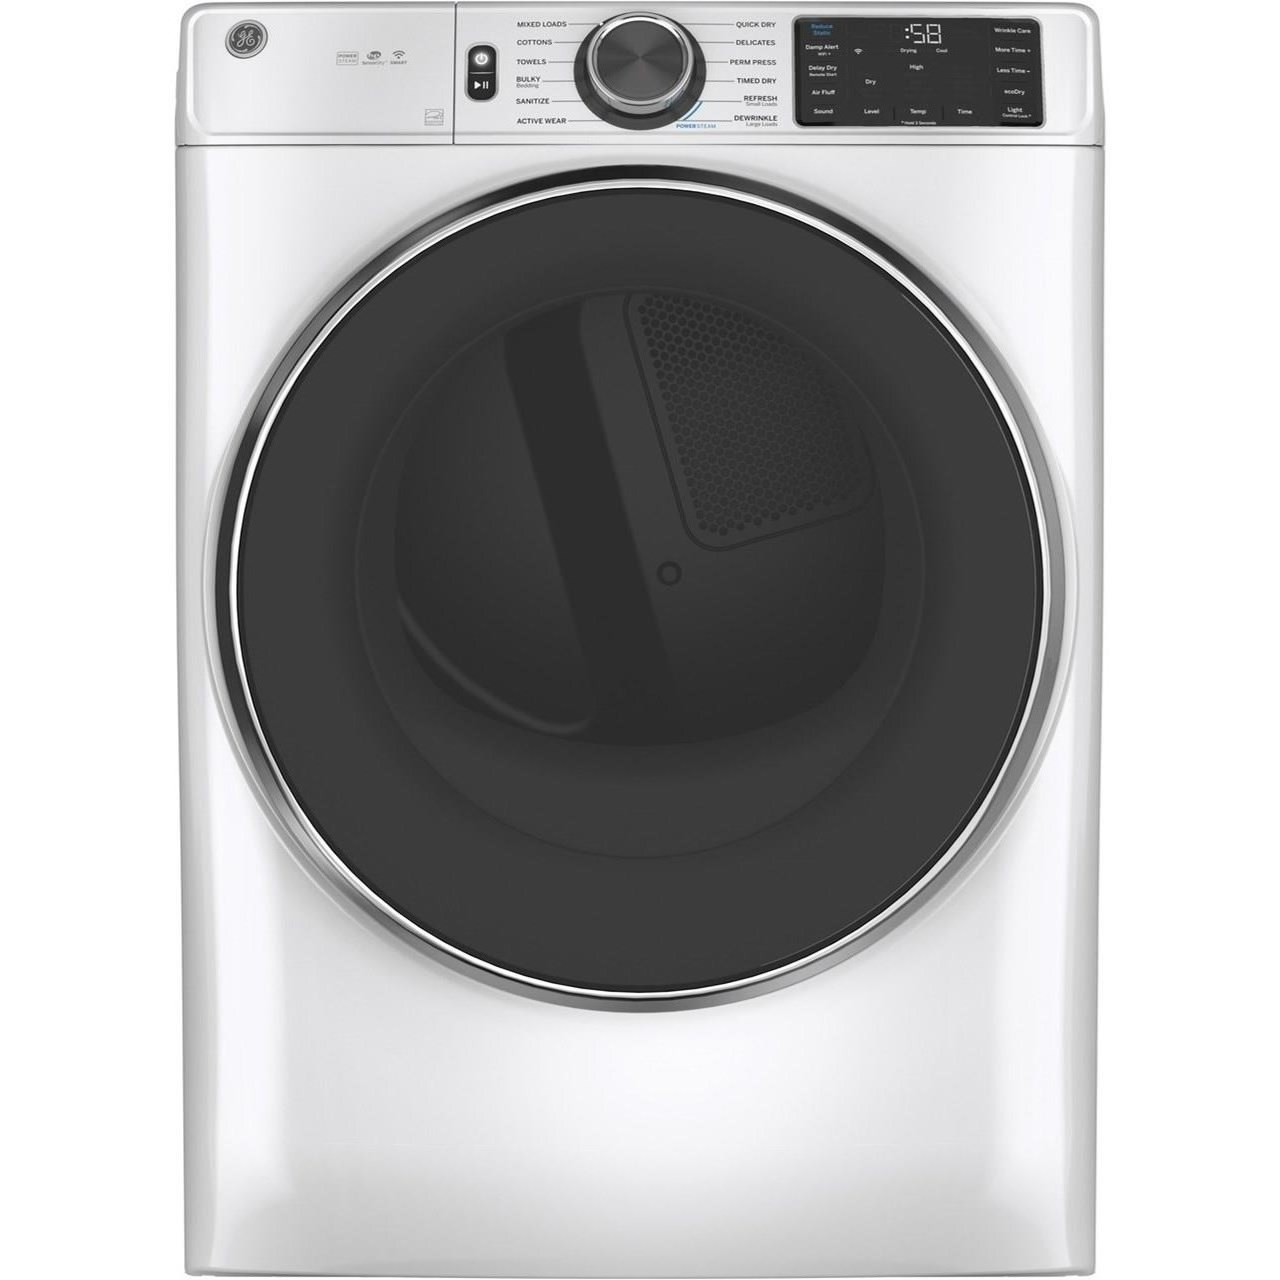 Home Laundry GE® 7.8 cu. ft. Capacity Gas Dryer by GE Appliances at Furniture and ApplianceMart